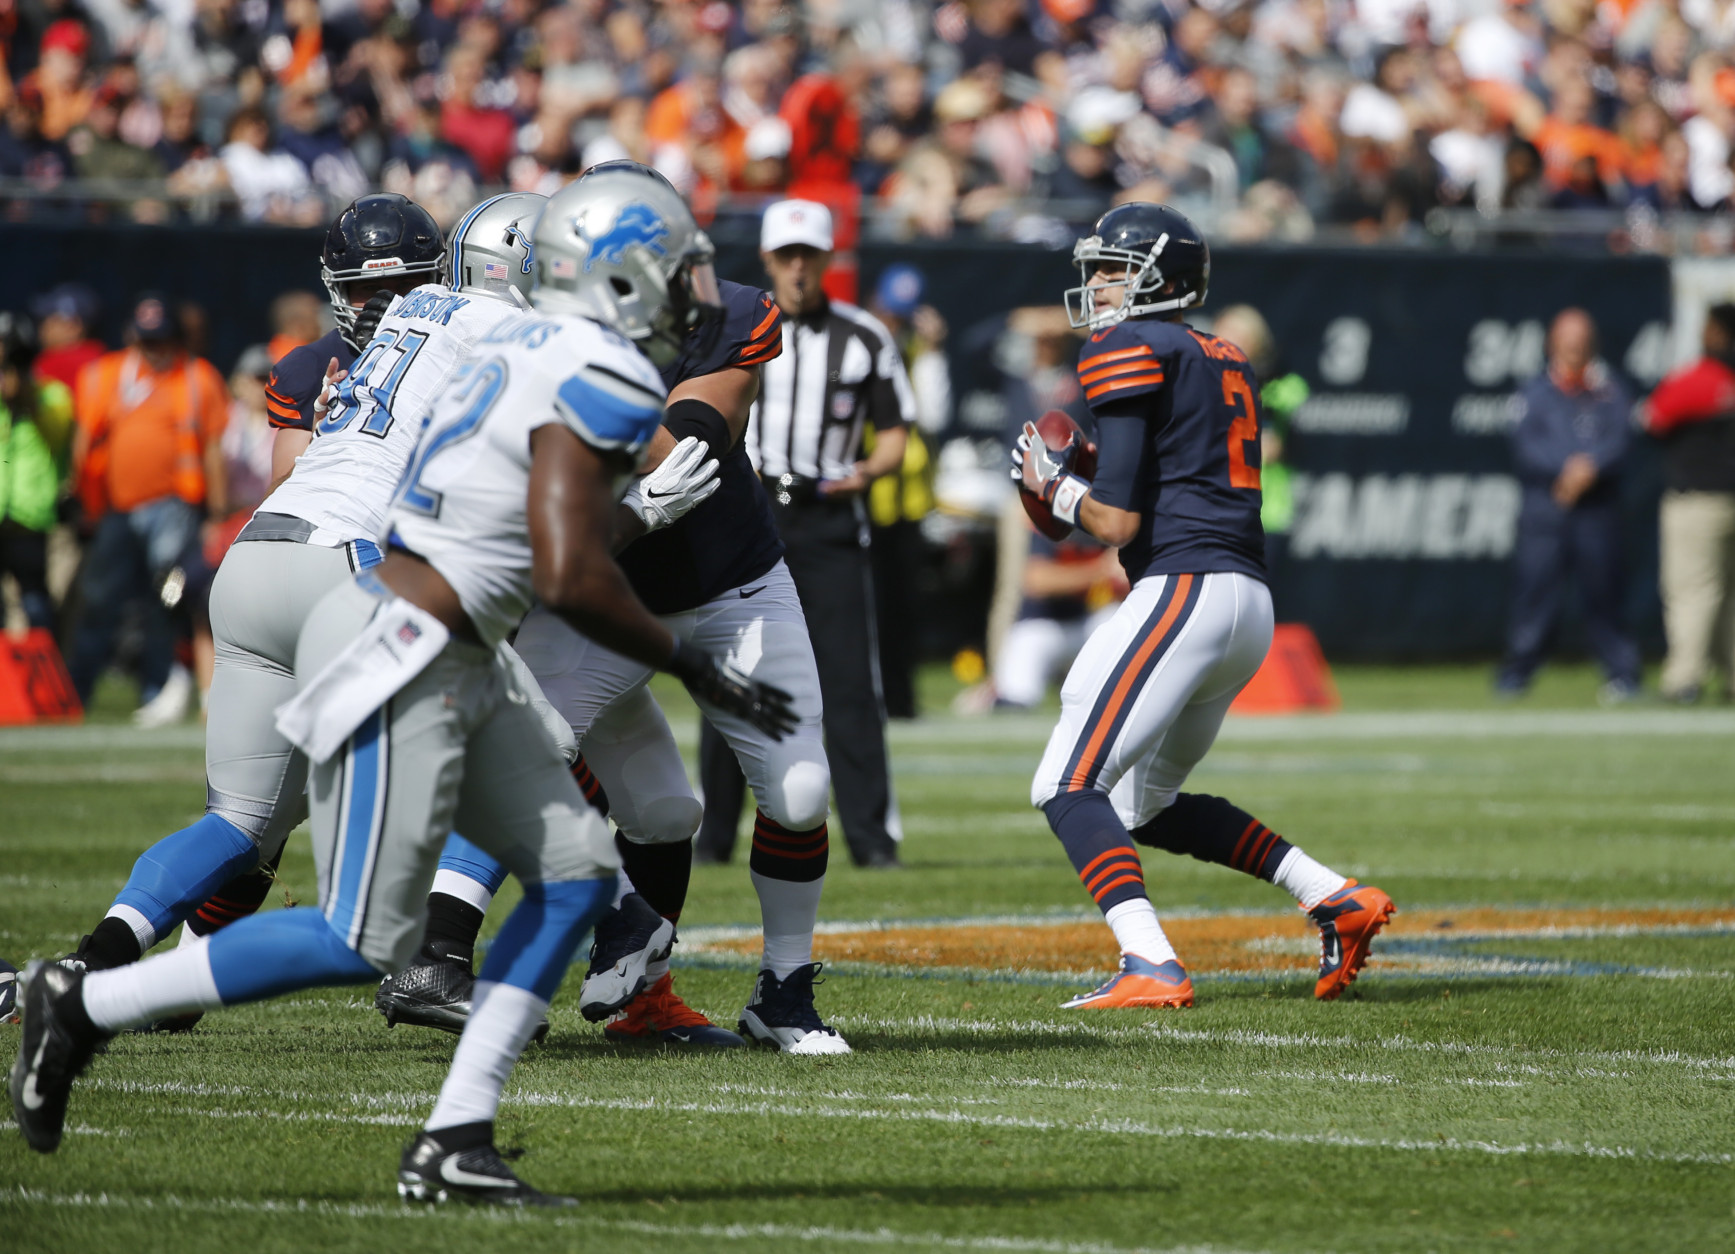 Chicago Bears quarterback Brian Hoyer (2) looks for a receiver during the first half of an NFL football game against the Detroit Lions, Sunday, Oct. 2, 2016, in Chicago. (AP Photo/Charles Rex Arbogast)